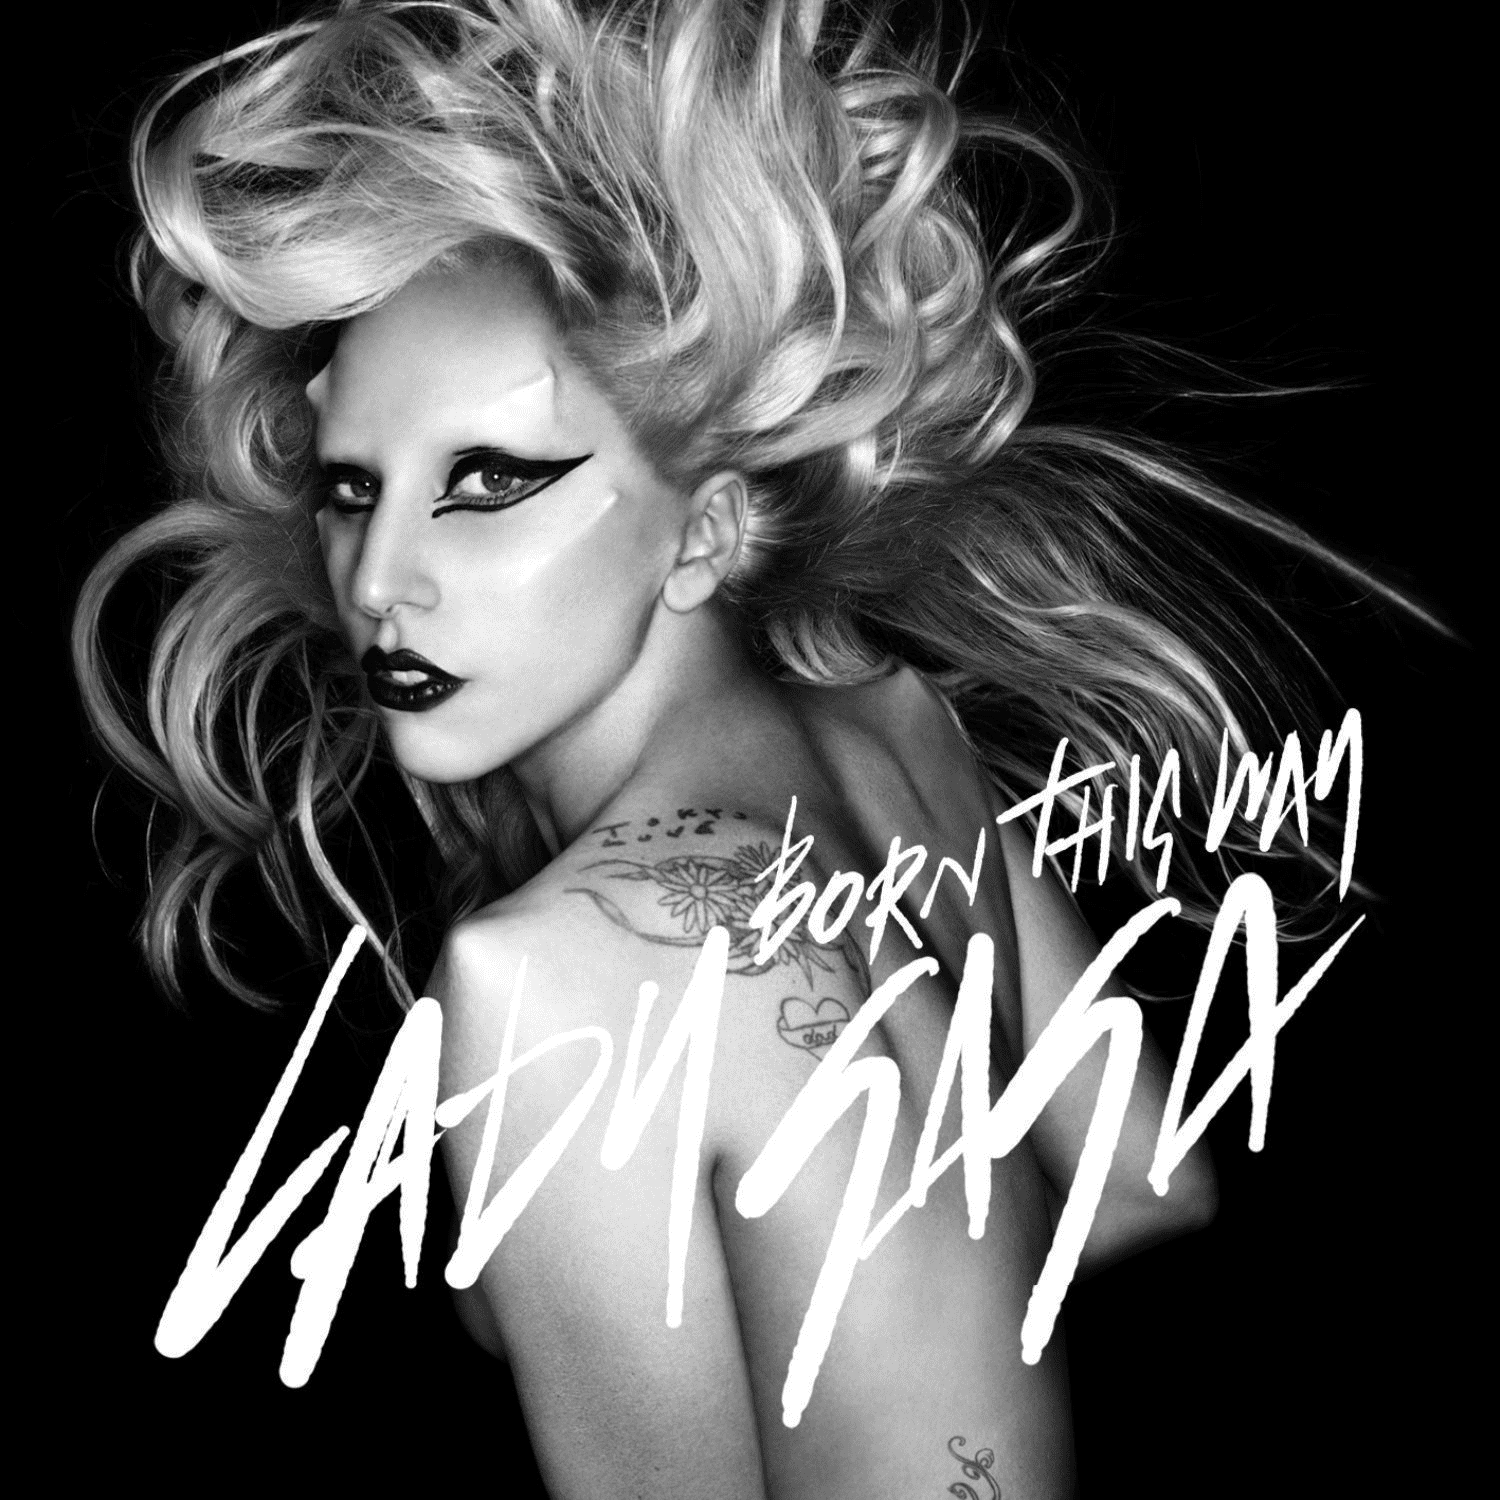 Top 10 Best Lady Gaga Songs